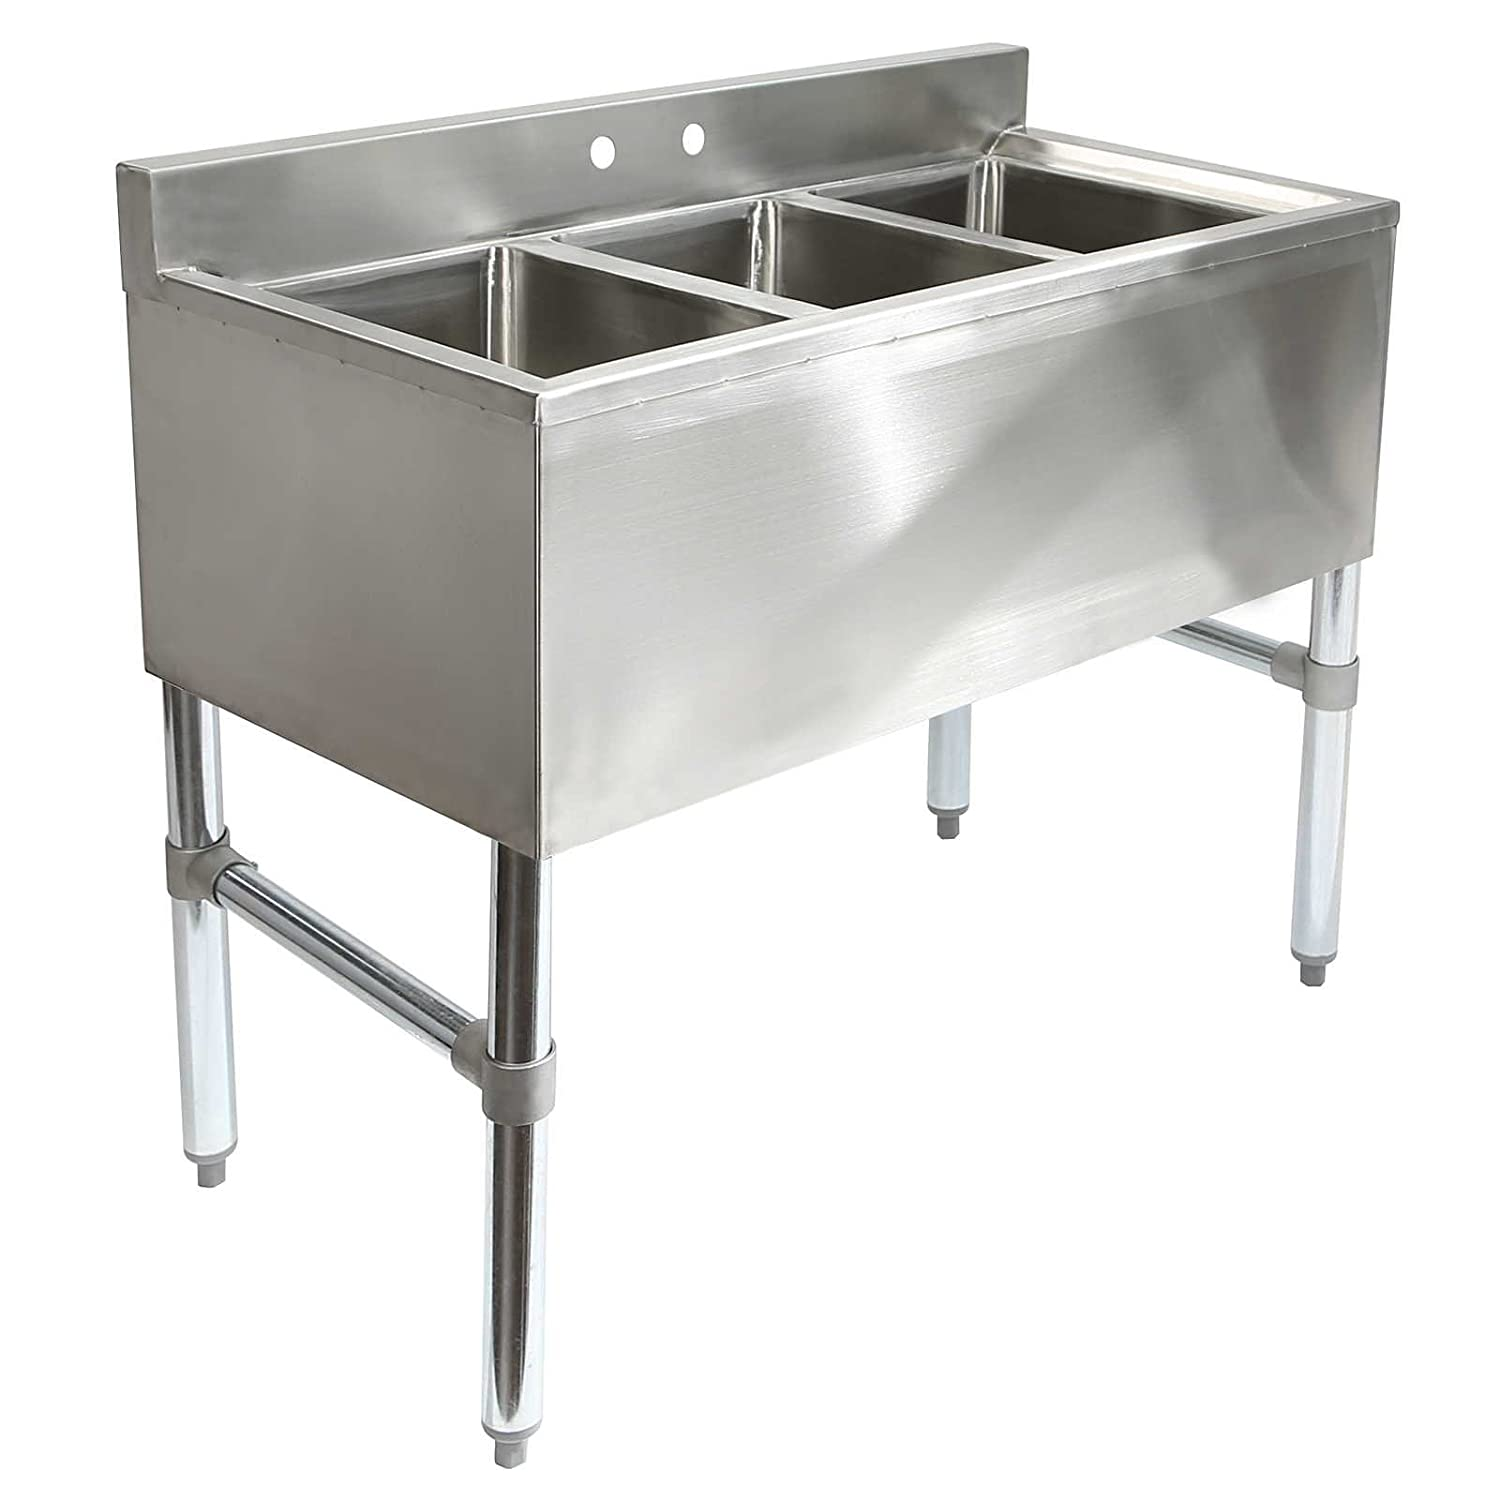 Gridmann 3 Compartment NSF Stainless Steel Commercial Underbar Sink ...